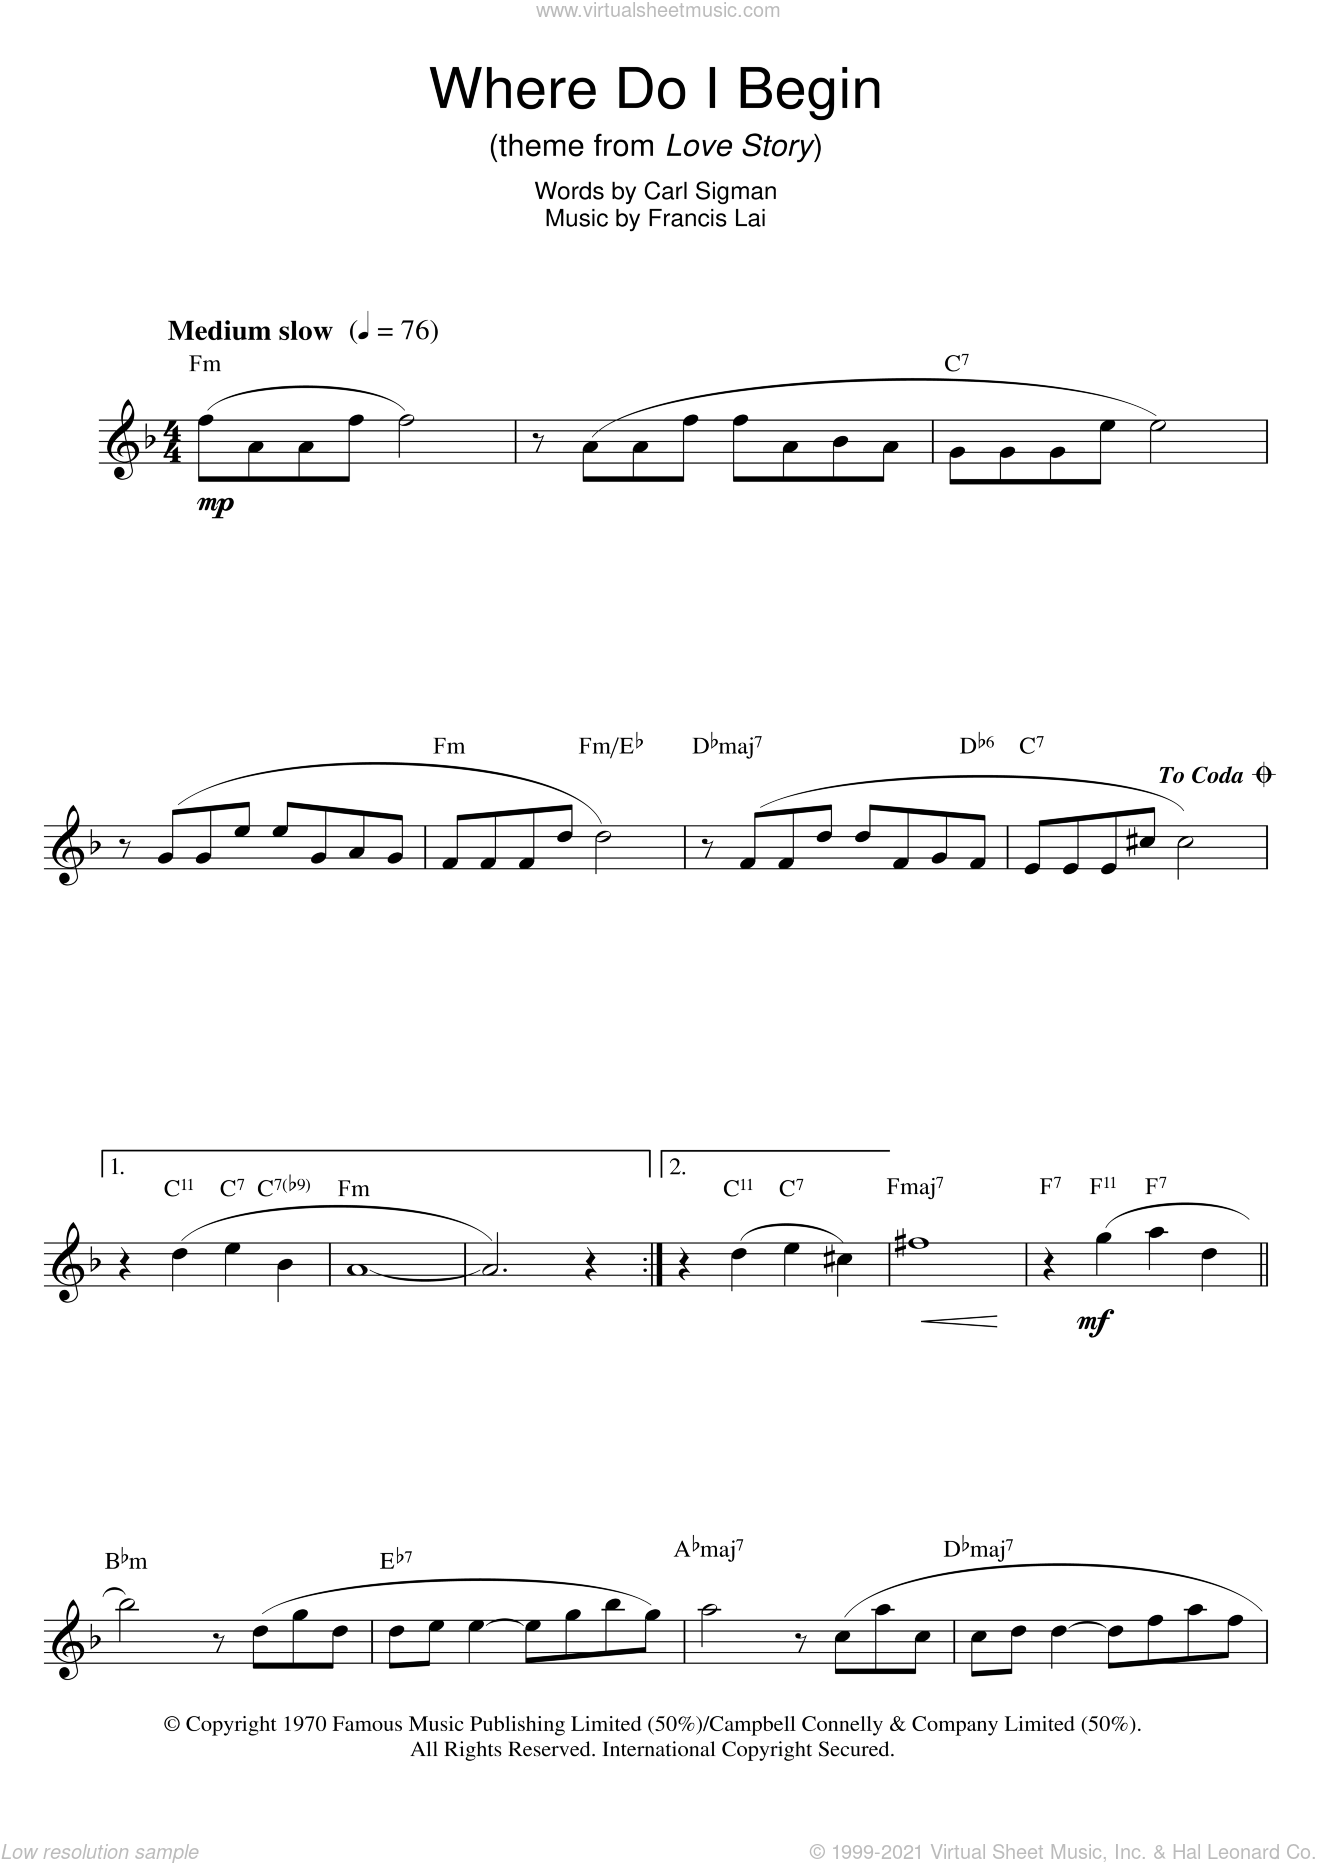 Where Do I Begin (theme from Love Story) sheet music for saxophone solo by Francis Lai, Andy Williams and Carl Sigman. Score Image Preview.